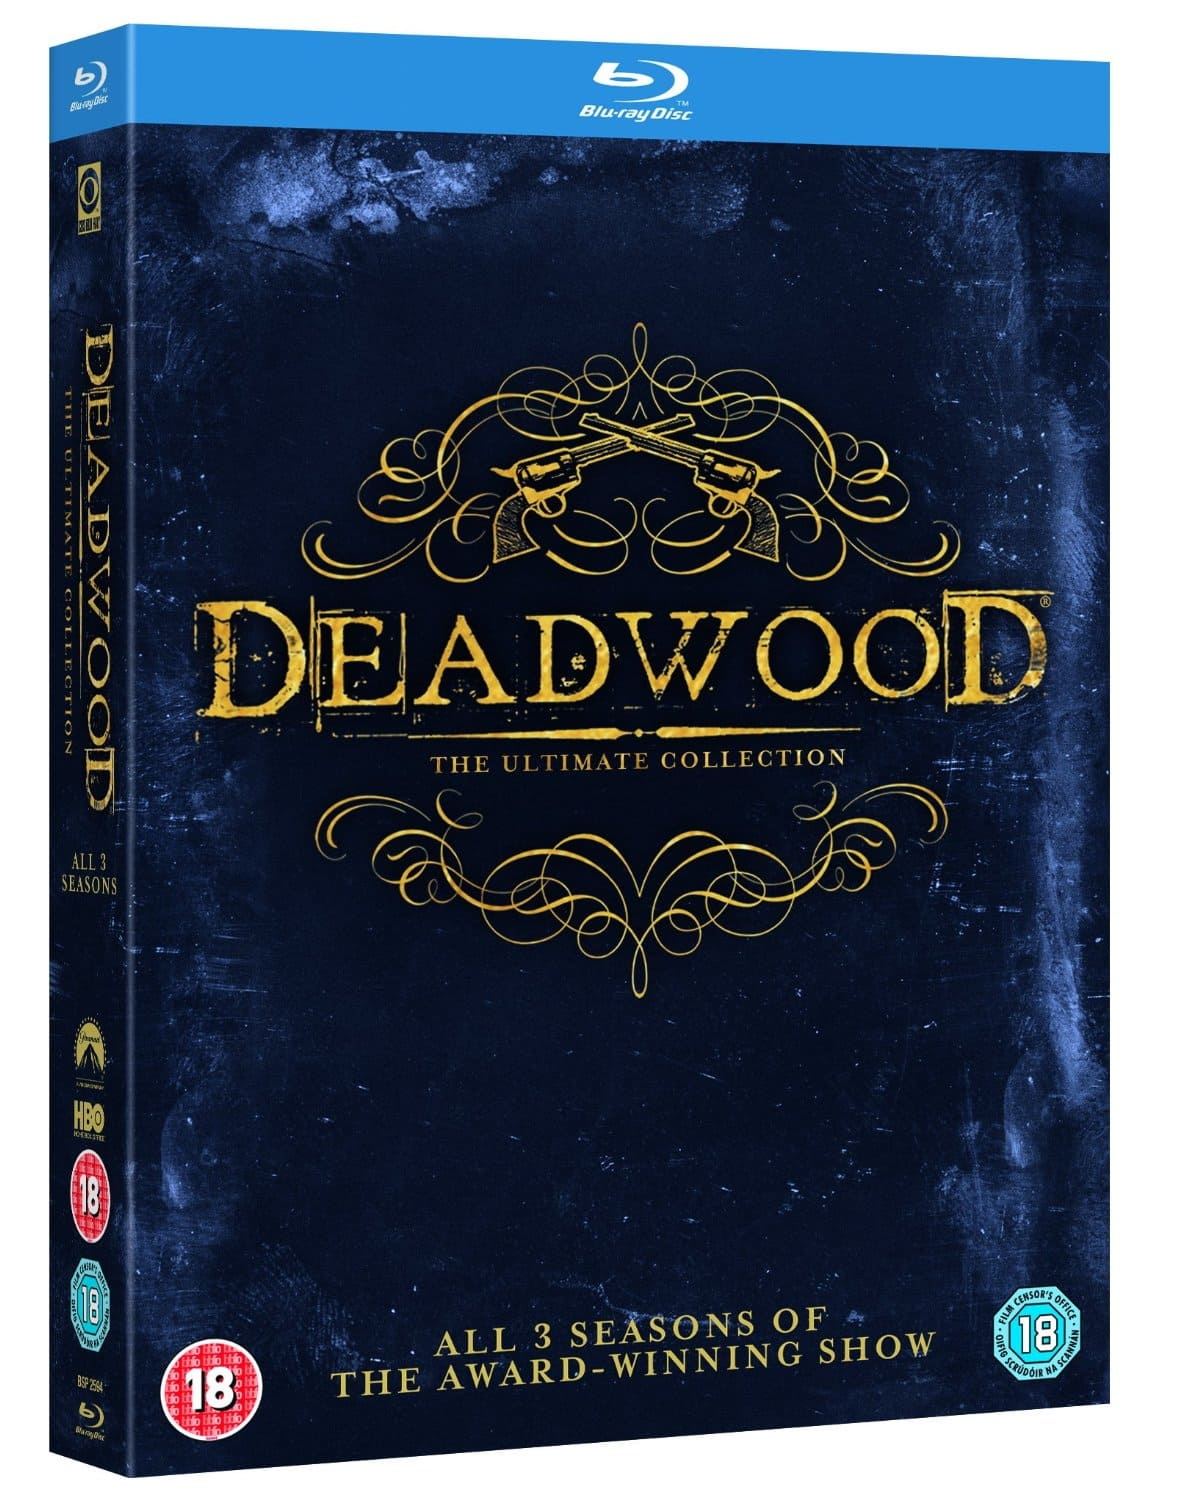 Deadwood: The Complete Collection (Region Free Blu-ray) $19.79 Shipped